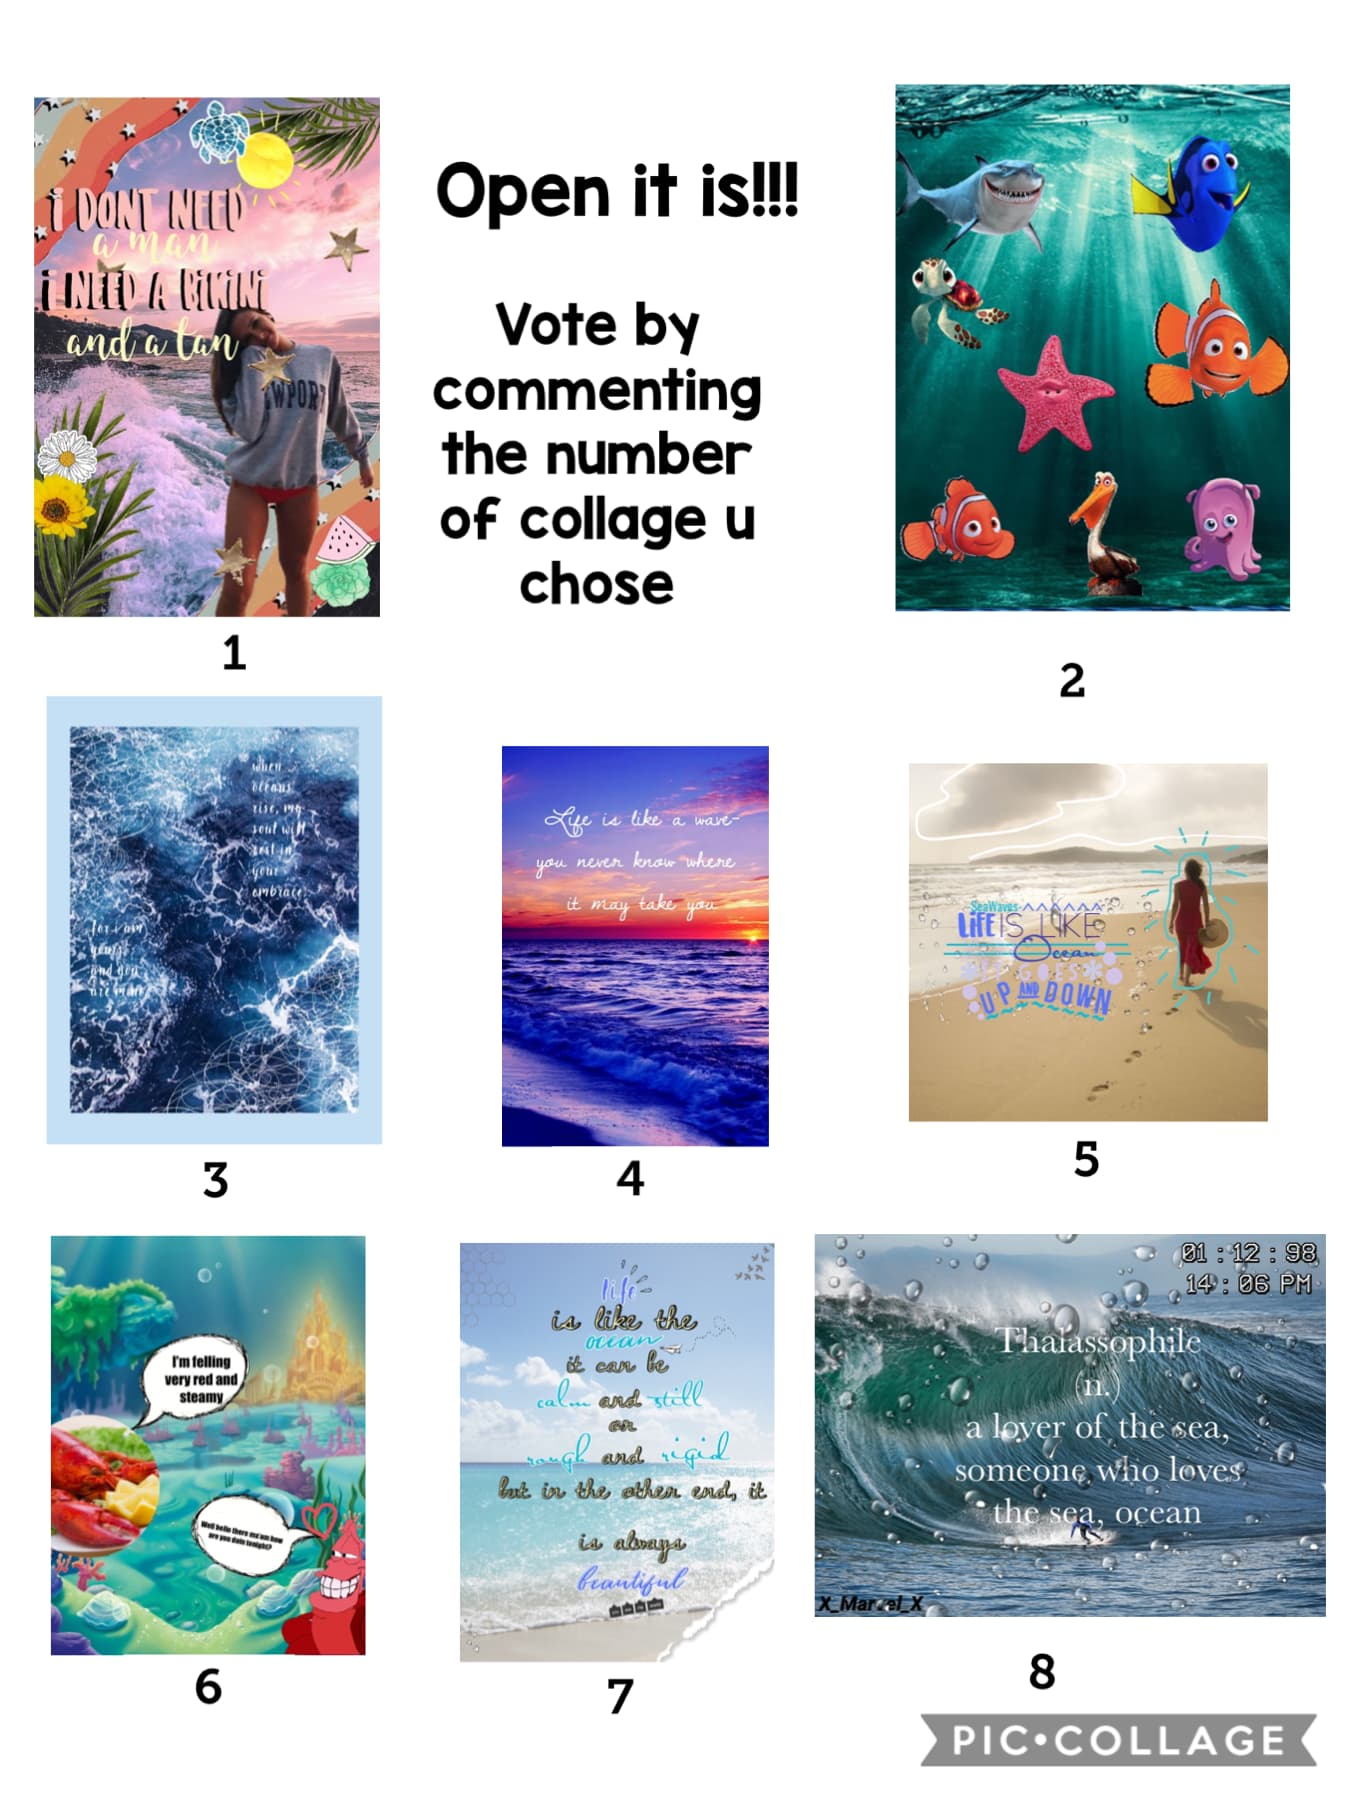 🌊TaP🌊 Voting for round 1 is here, you can vote if you have participated or not, you can only vote once. Please try to not vote for yourself. Thanks y'all  - August